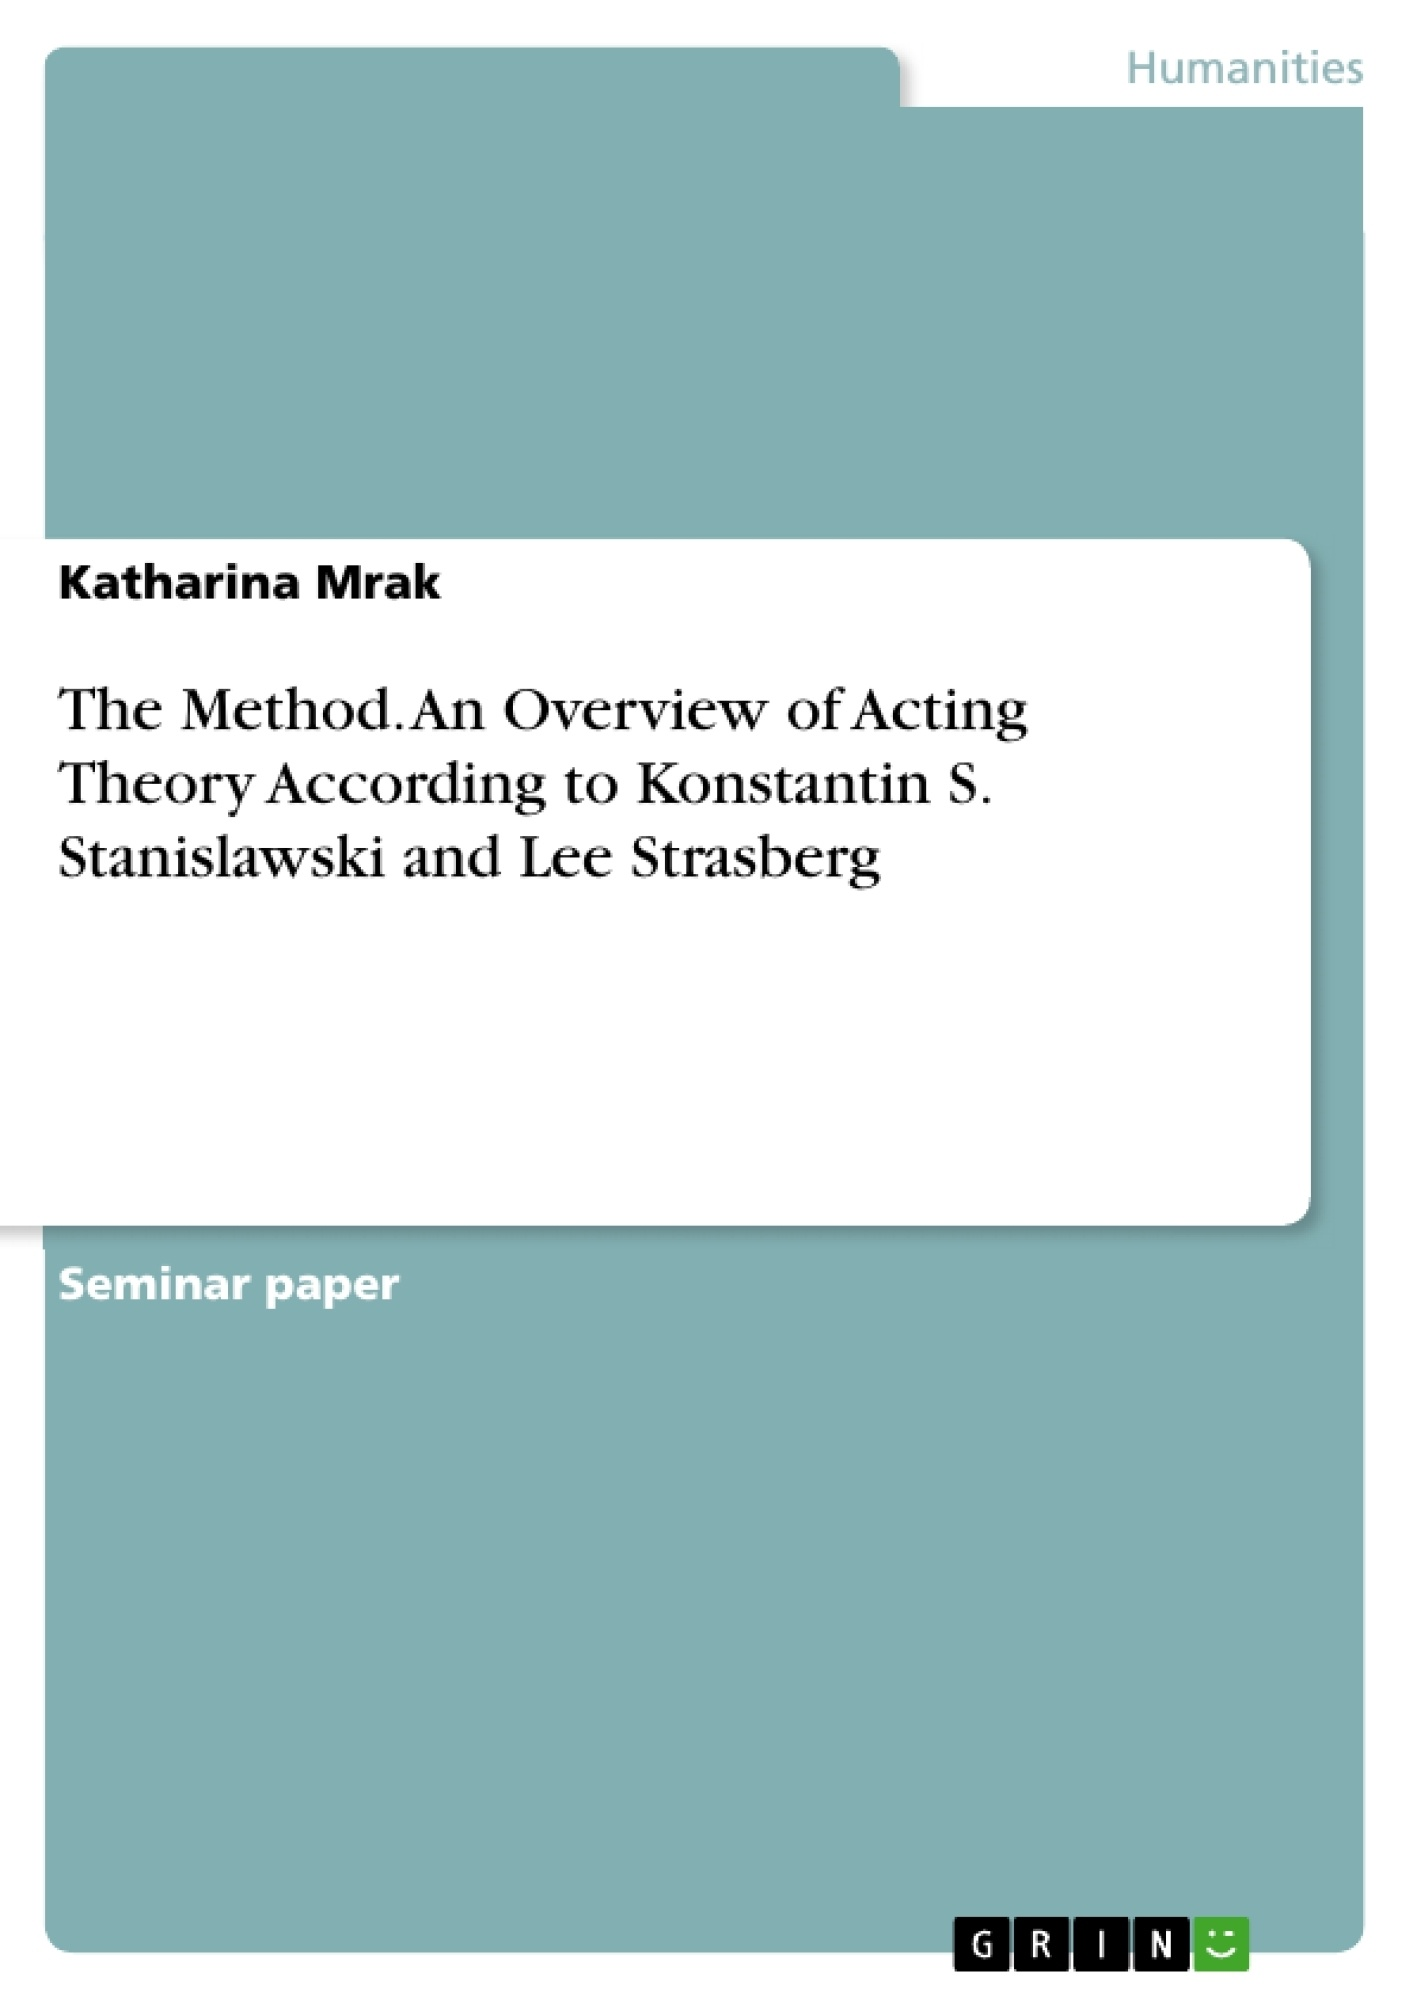 Title: The Method. An Overview of Acting Theory According to Konstantin S. Stanislawski and Lee Strasberg